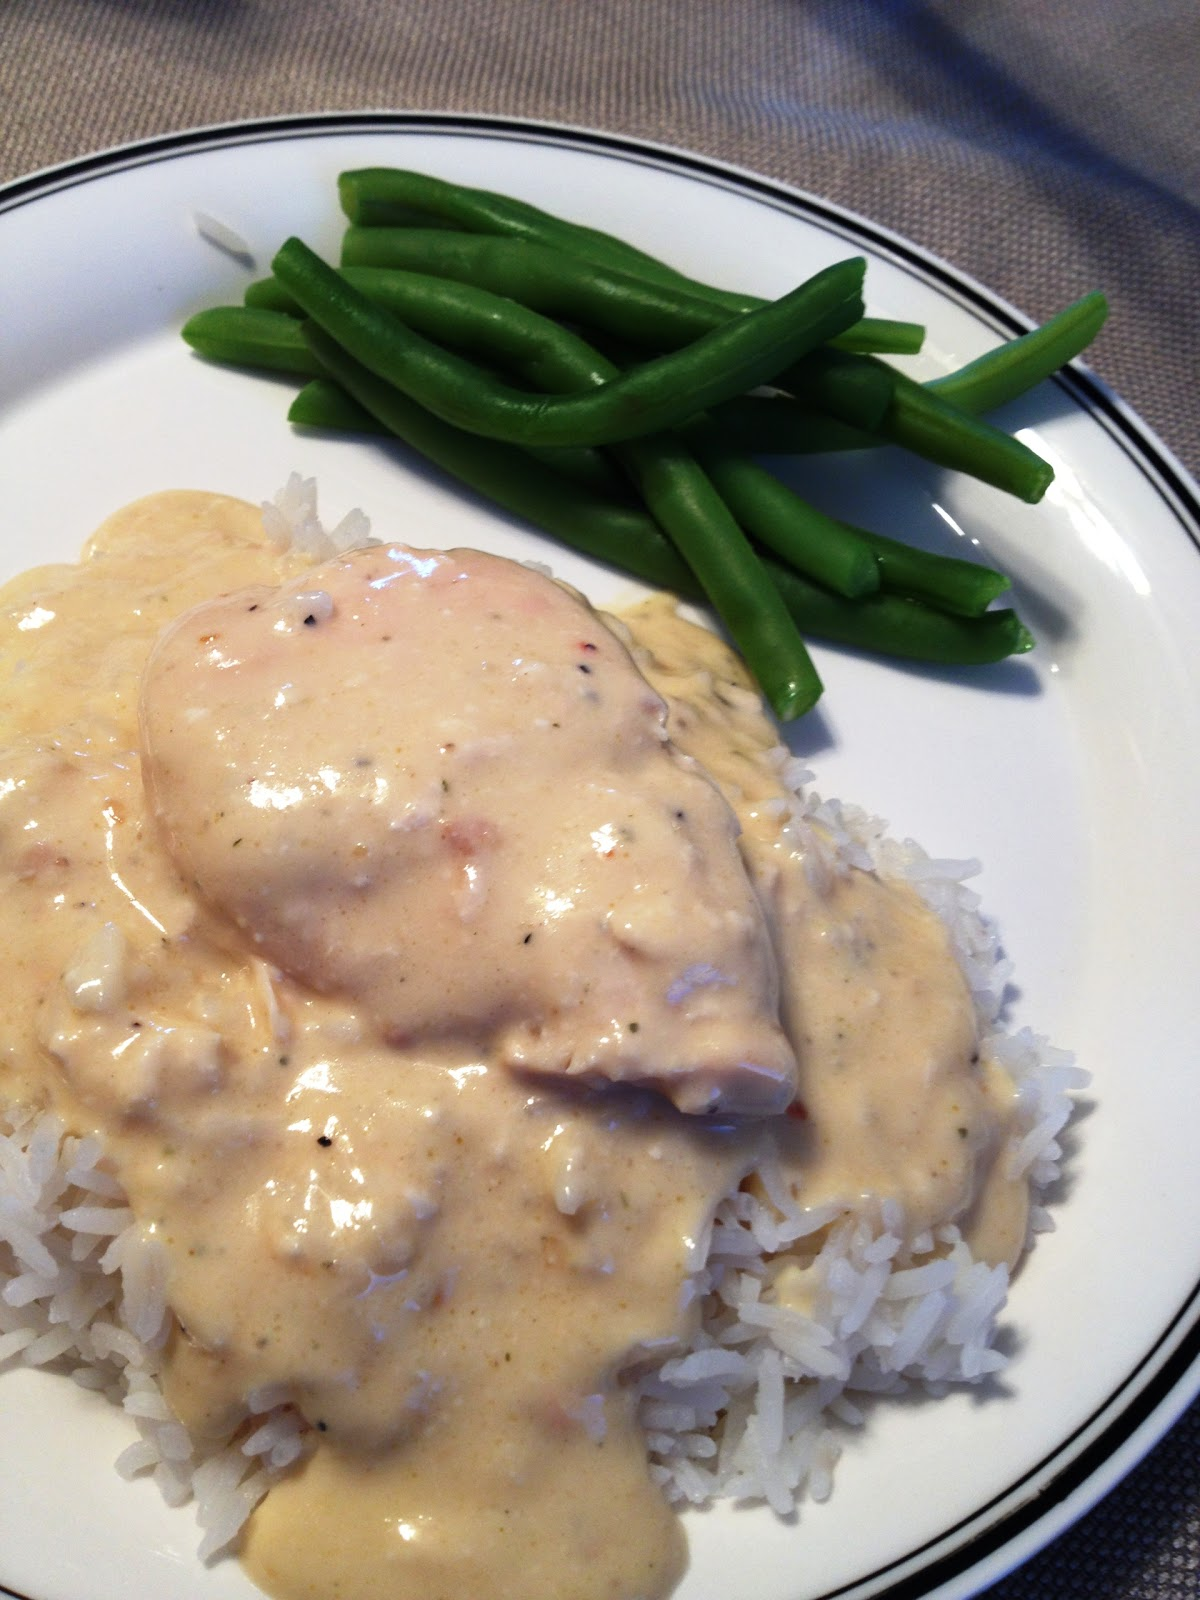 Mar 09, · Crockpot Chicken and Noodles – a comforting, home cooked meal made right in your slow cooker. Creamy noodles and juicy chicken are cooked in a savory sauce for a meal the whole family will love! Hey there, y'all. I know it's been been awhile since my last recipe post, and I /5(34).